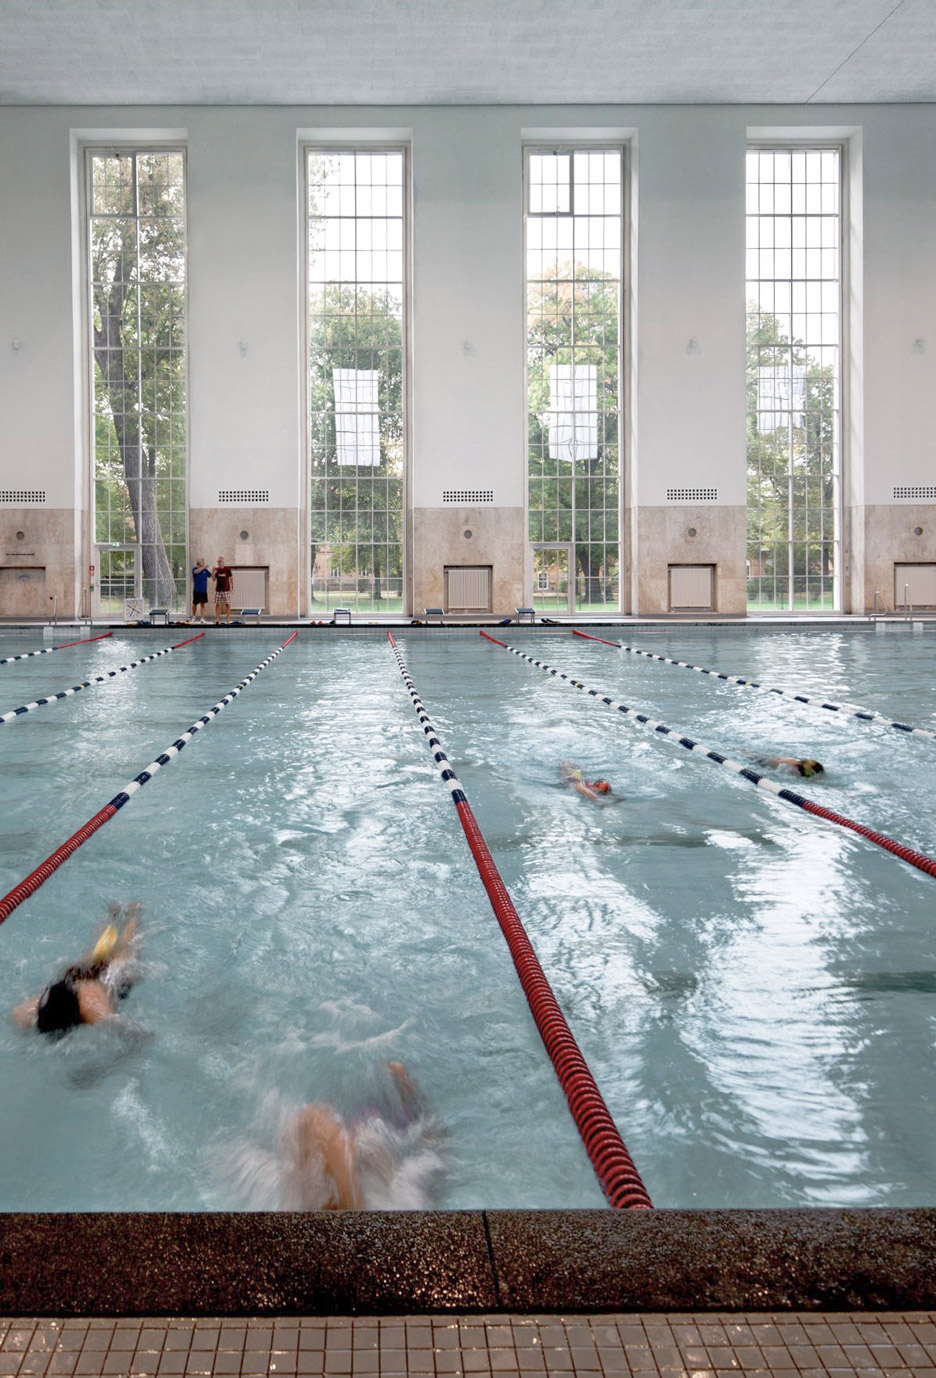 Swimming Pools In Berlin Veauthier Meyer Architects Renovates Nazi Era Swimming Pool Hall